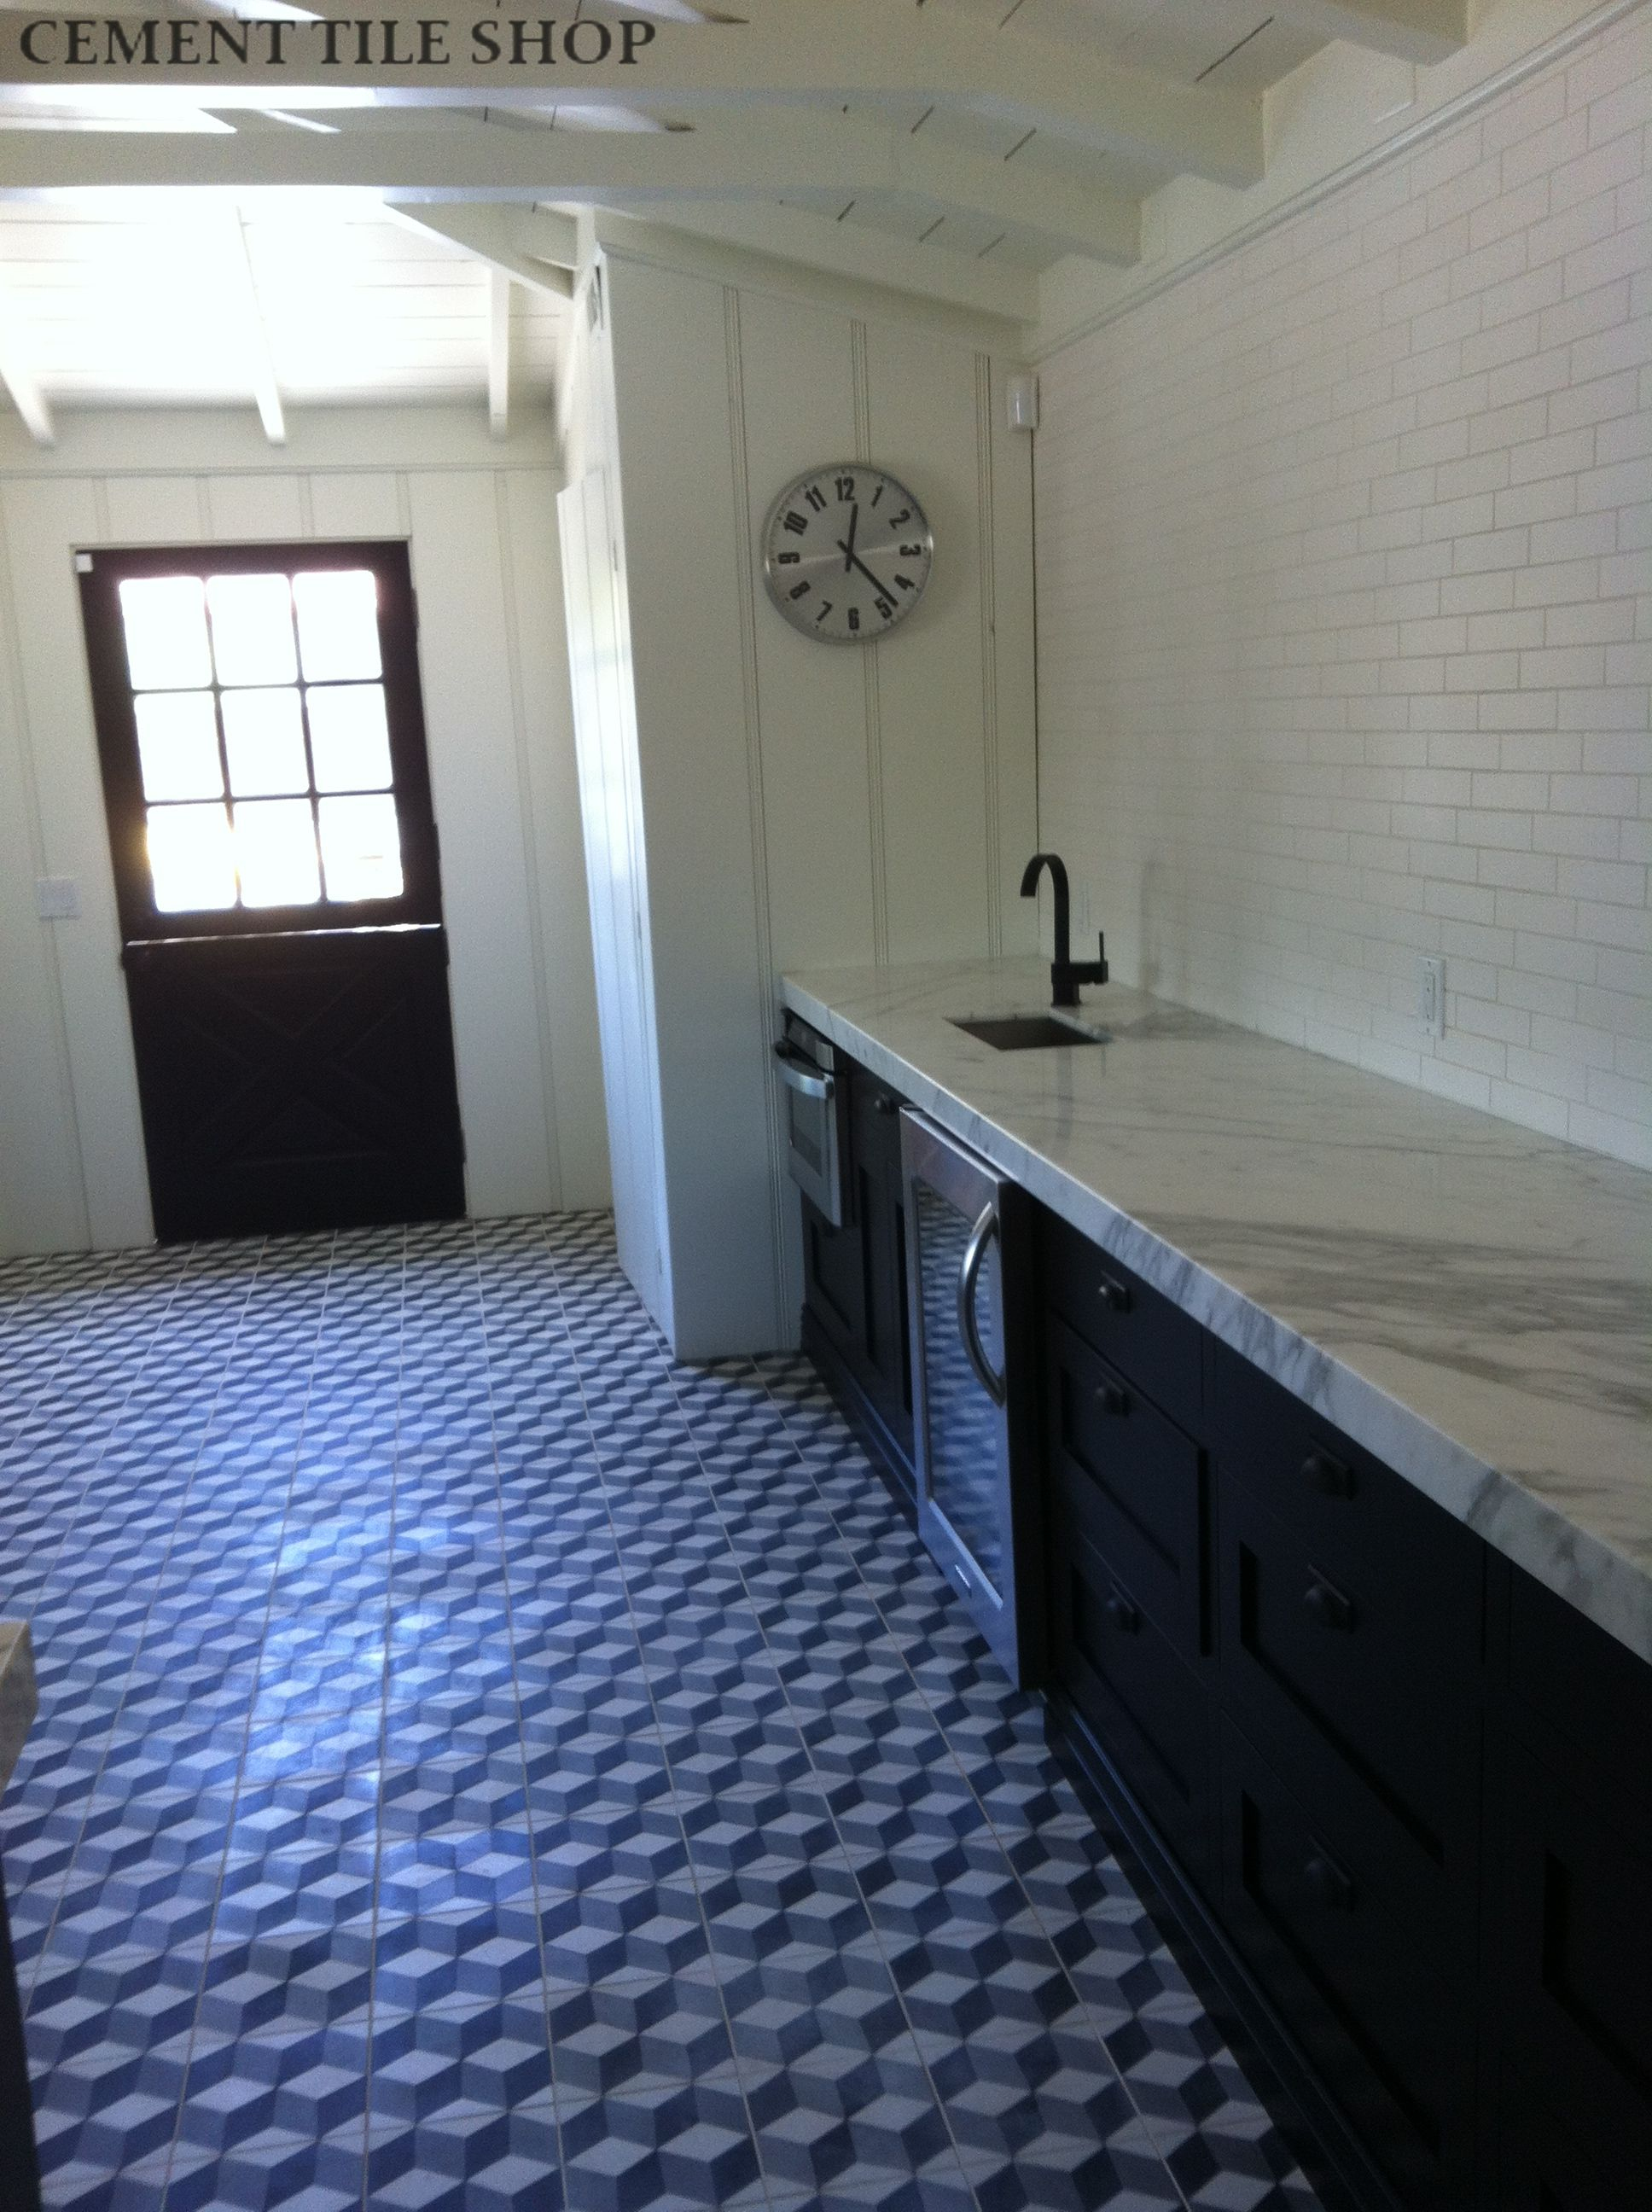 Residential Projects Cement Tile Shop Blog Page 2